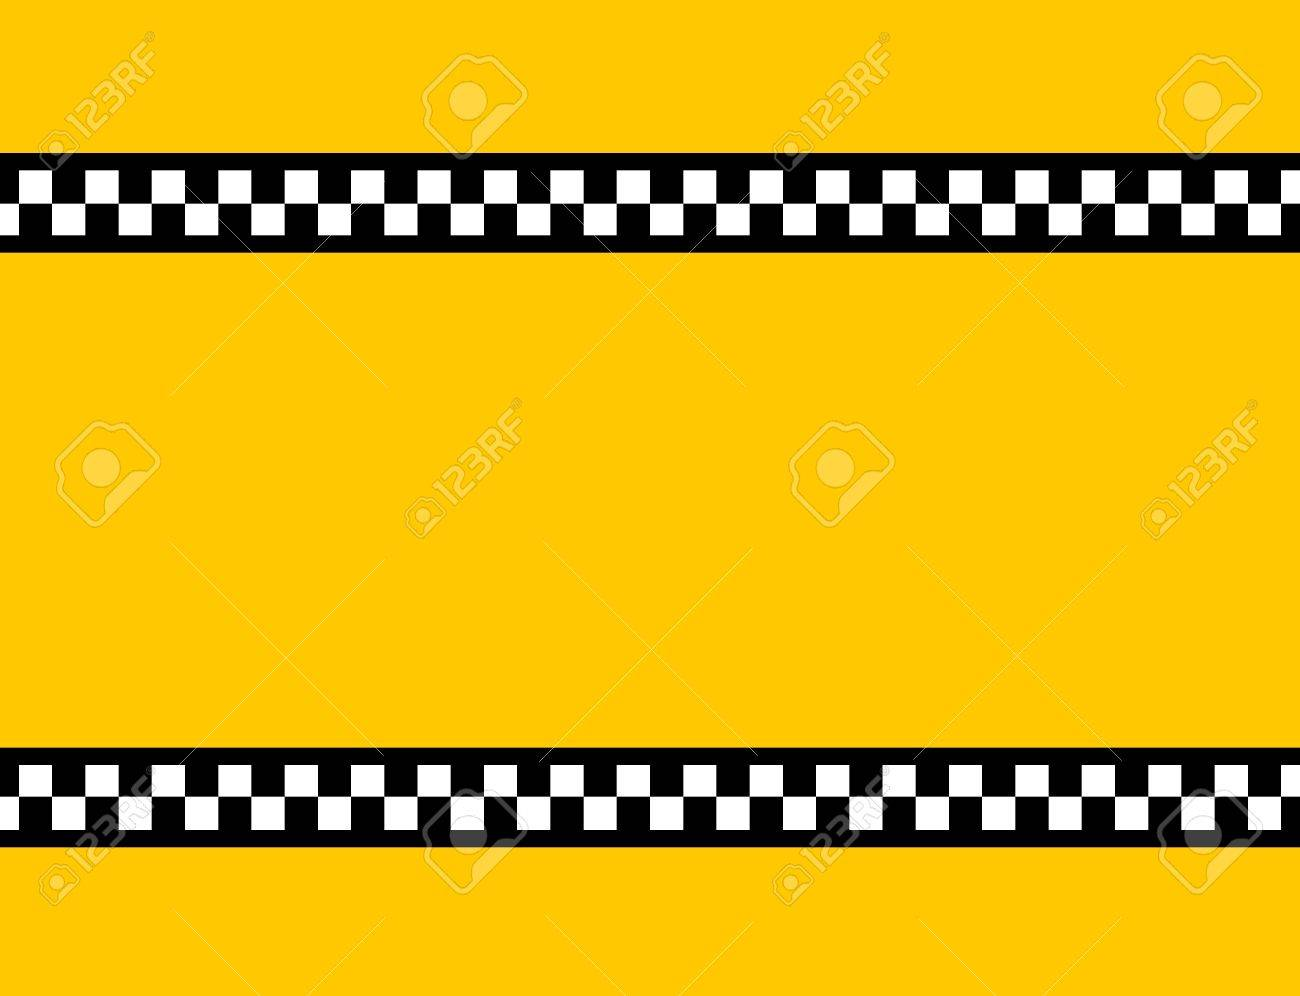 Background Of A Yellow Taxi Cab Without Text Stock Photo Picture 1300x996